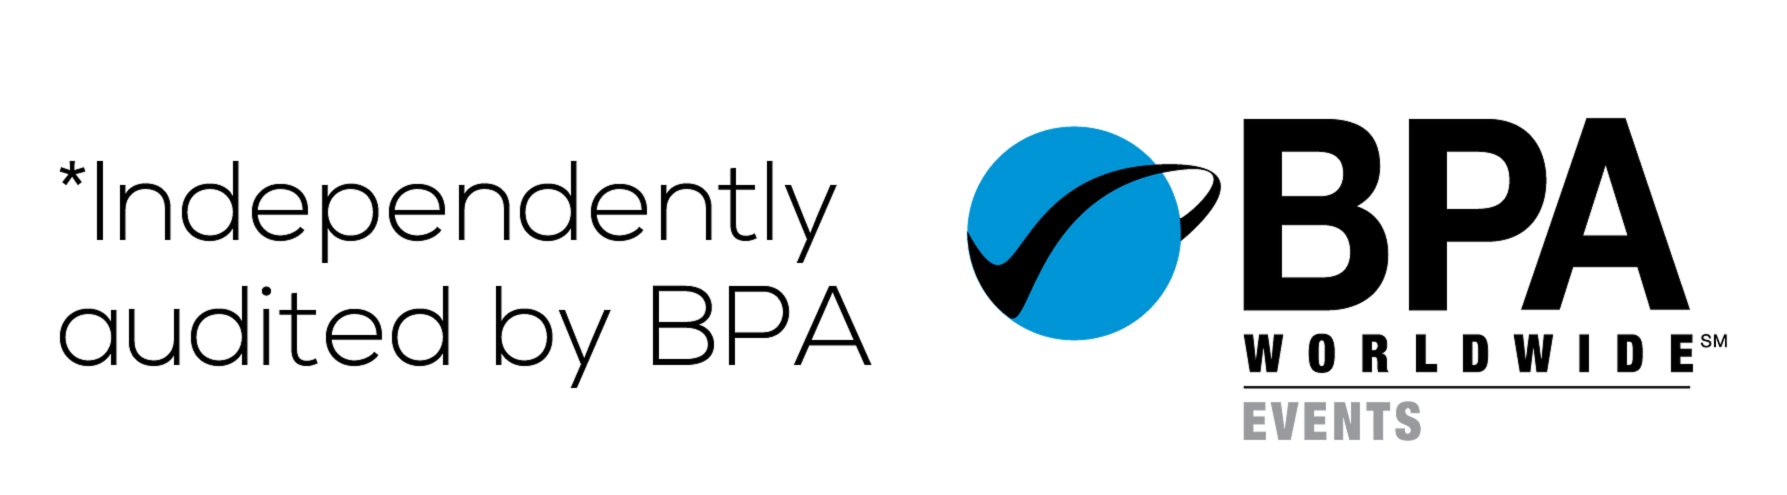 independently audited by BPA